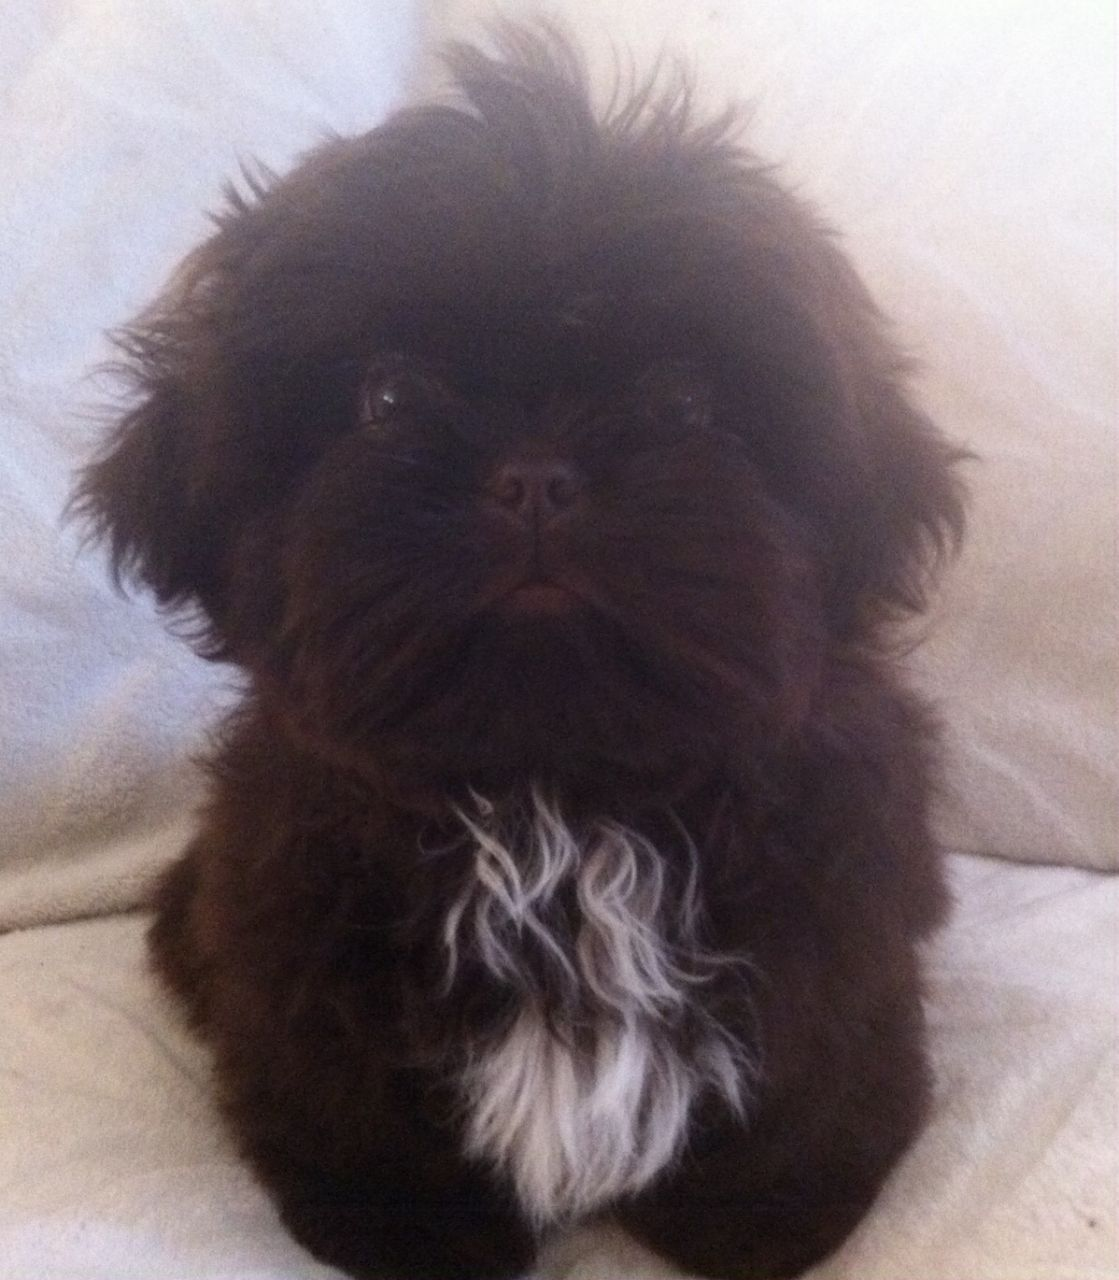 Stunning Solid Chocolate Shih Tzu Boy For Sale Hornchurch Essex